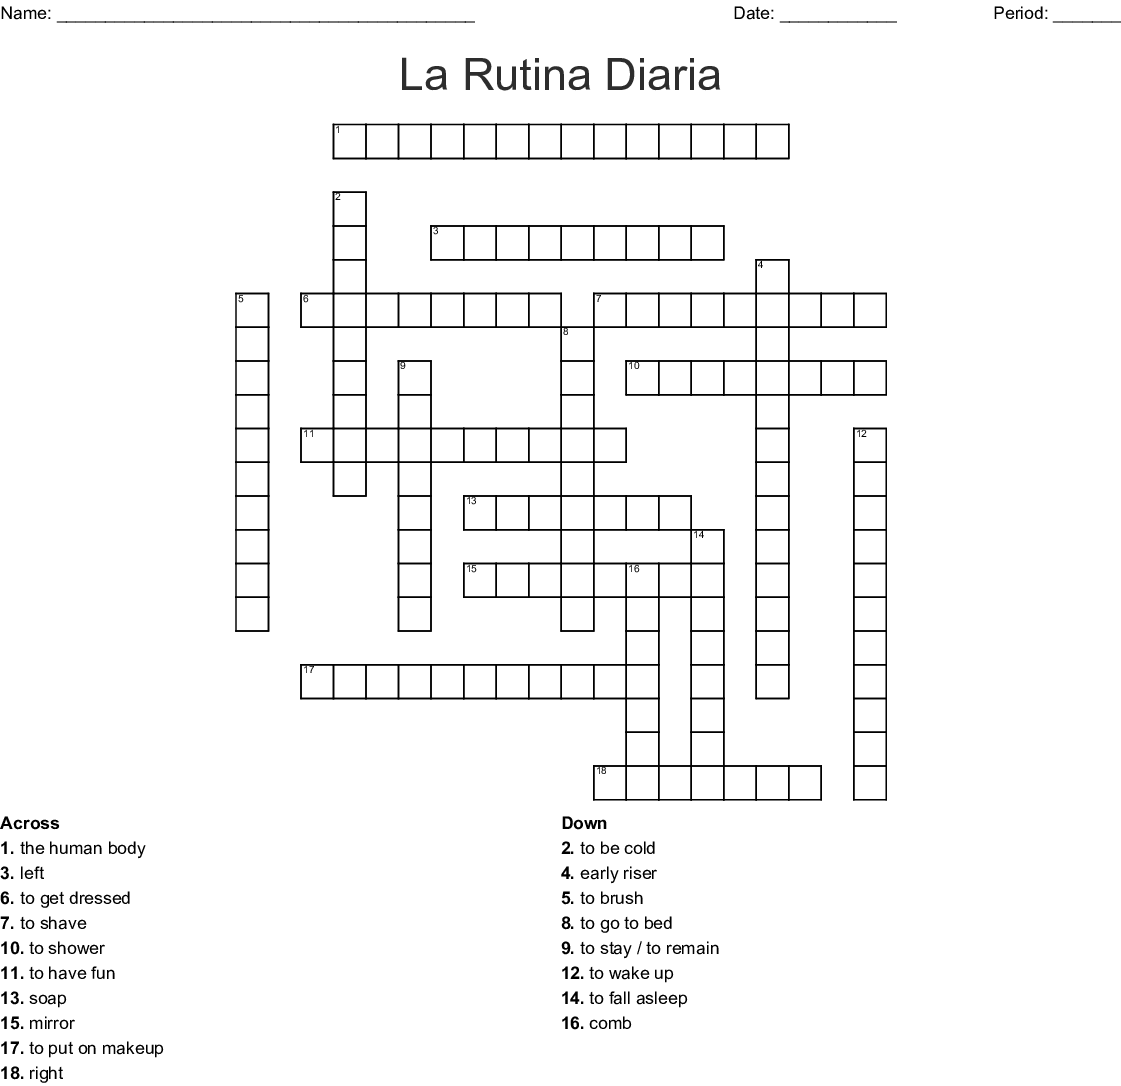 La Rutina Diaria Crossword